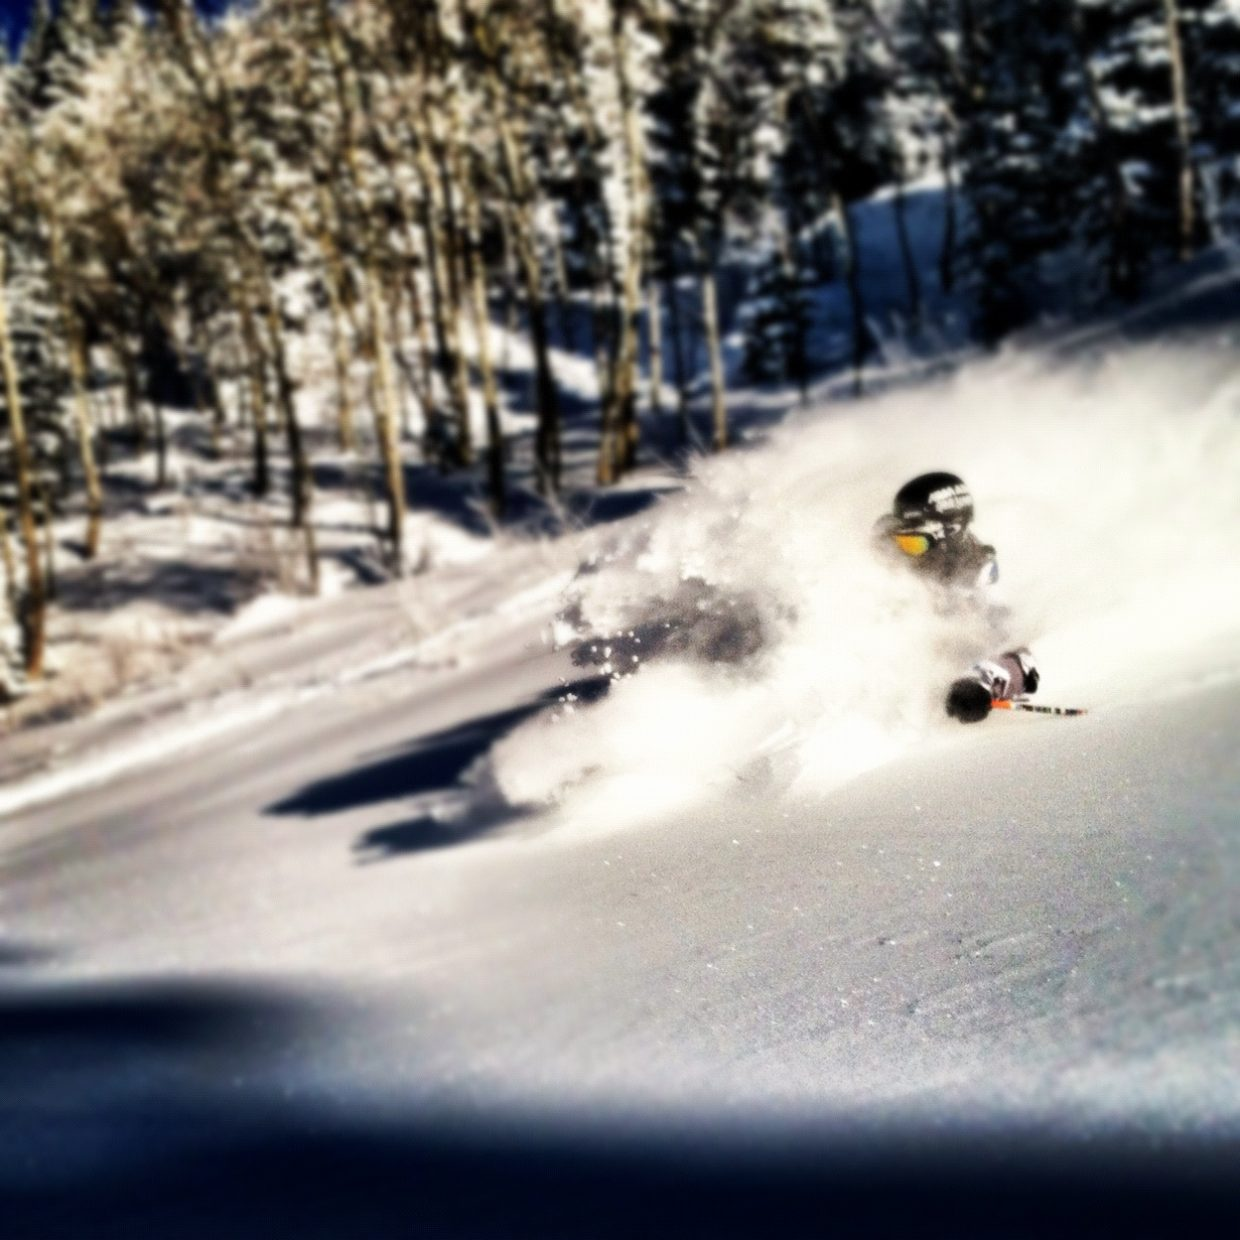 Wesley Park Shredding on a pow day. Photo submitted by Wesley Park